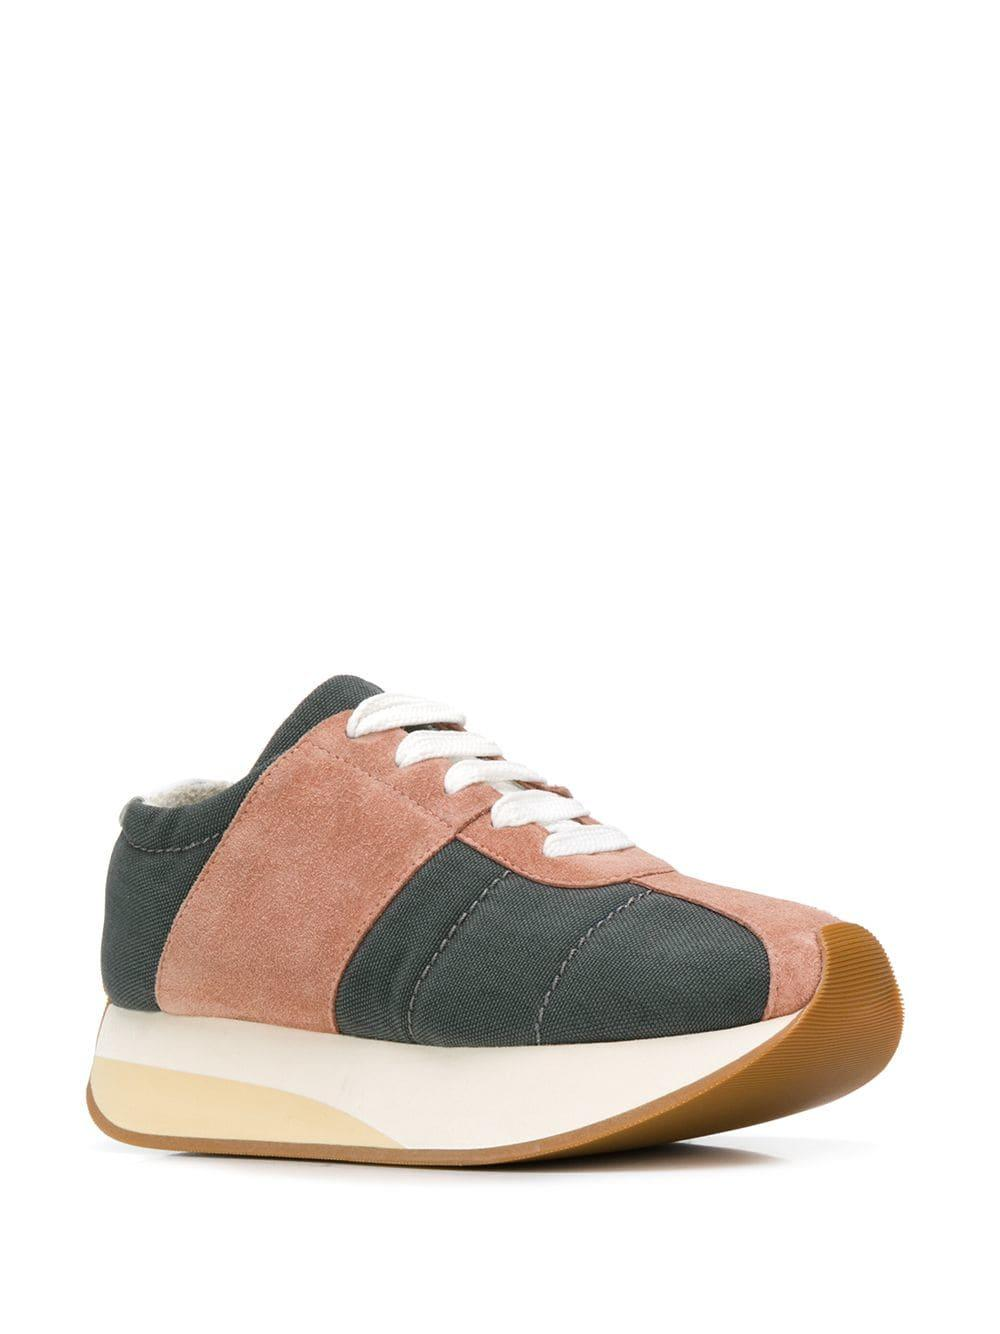 6a6e6444854 Lyst - Marni Platform Sneakers in Gray